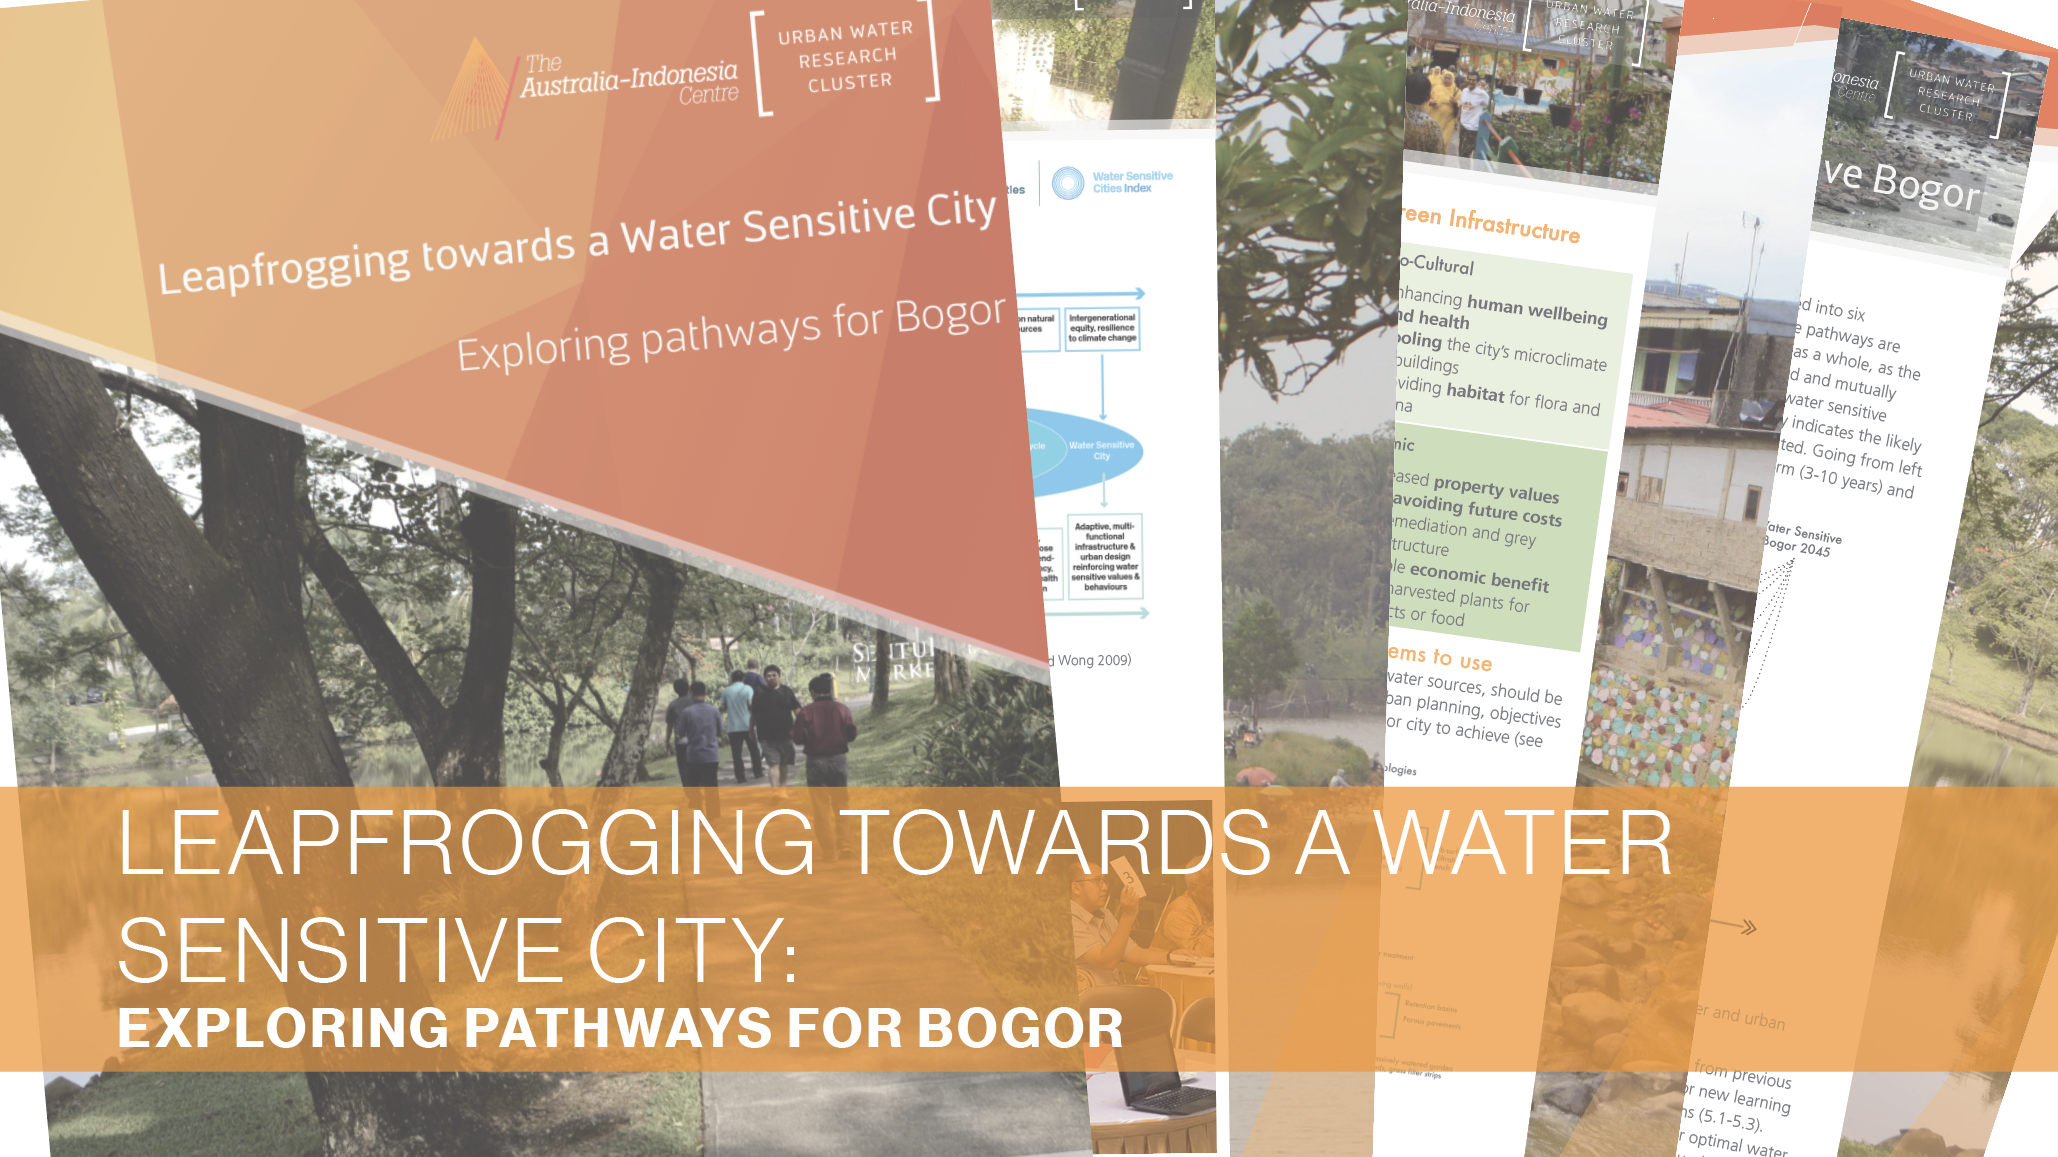 A guide for leapfrogging towards a water sensitive Bogor, Indonesia